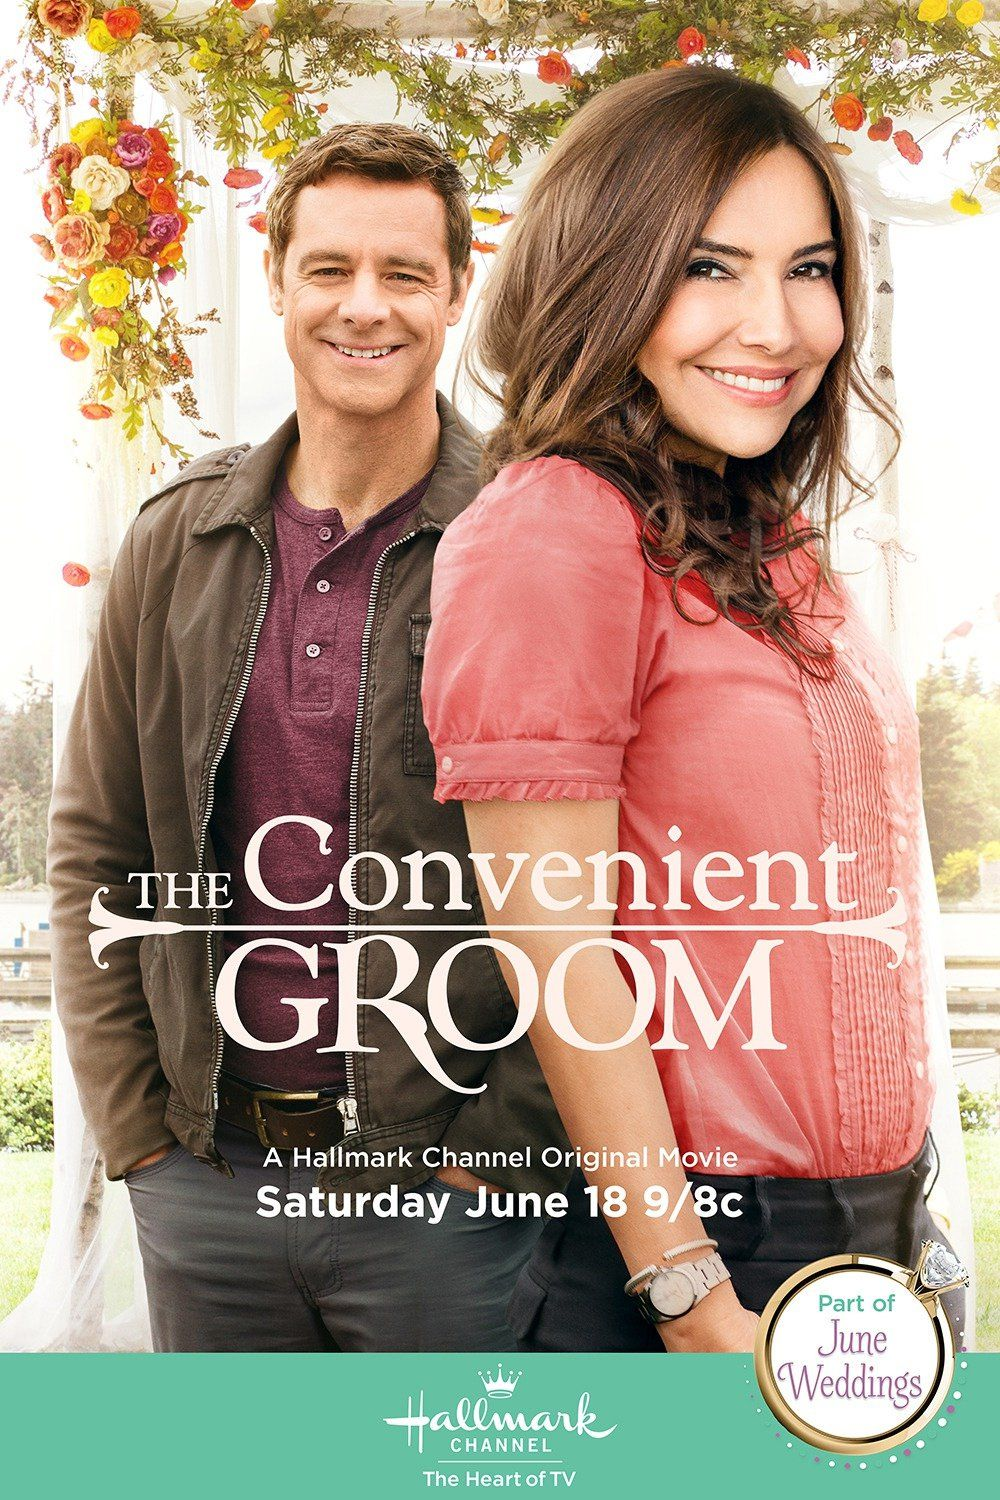 Watch The Convenient Groom online for free | CineRill